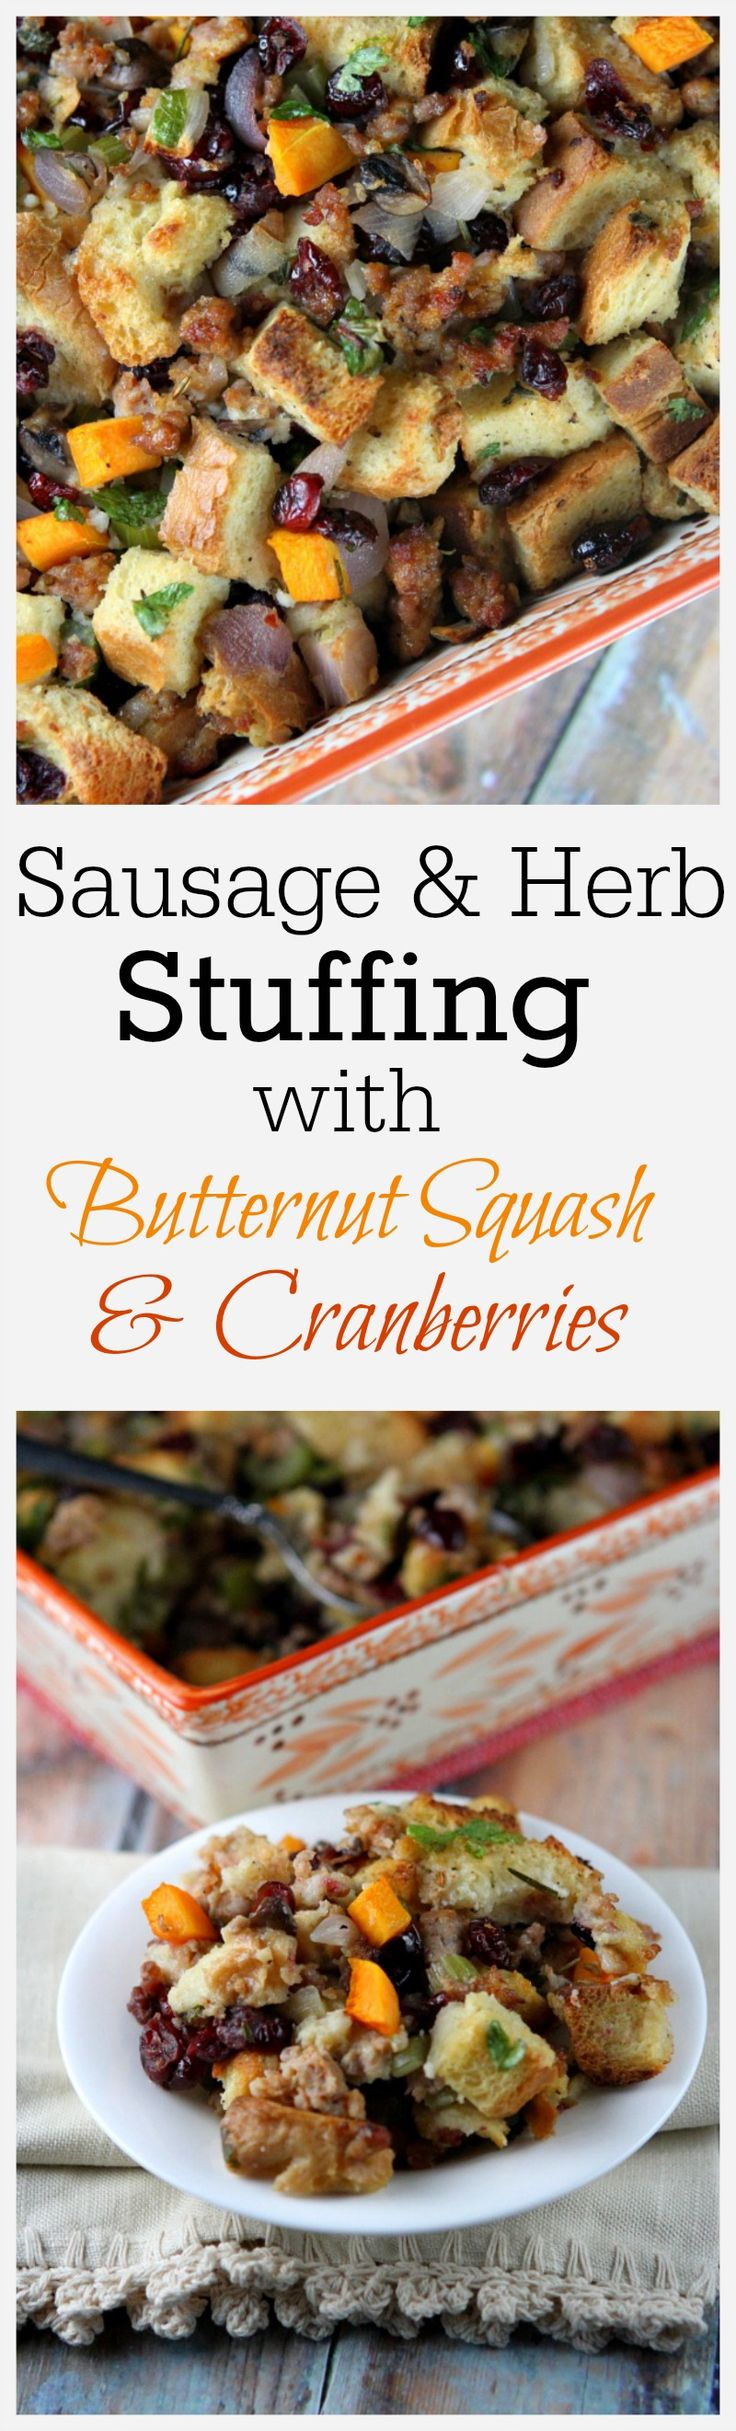 Best Thanksgiving stuffing recipes: Sausage and Herb Stuffing Recipe ...